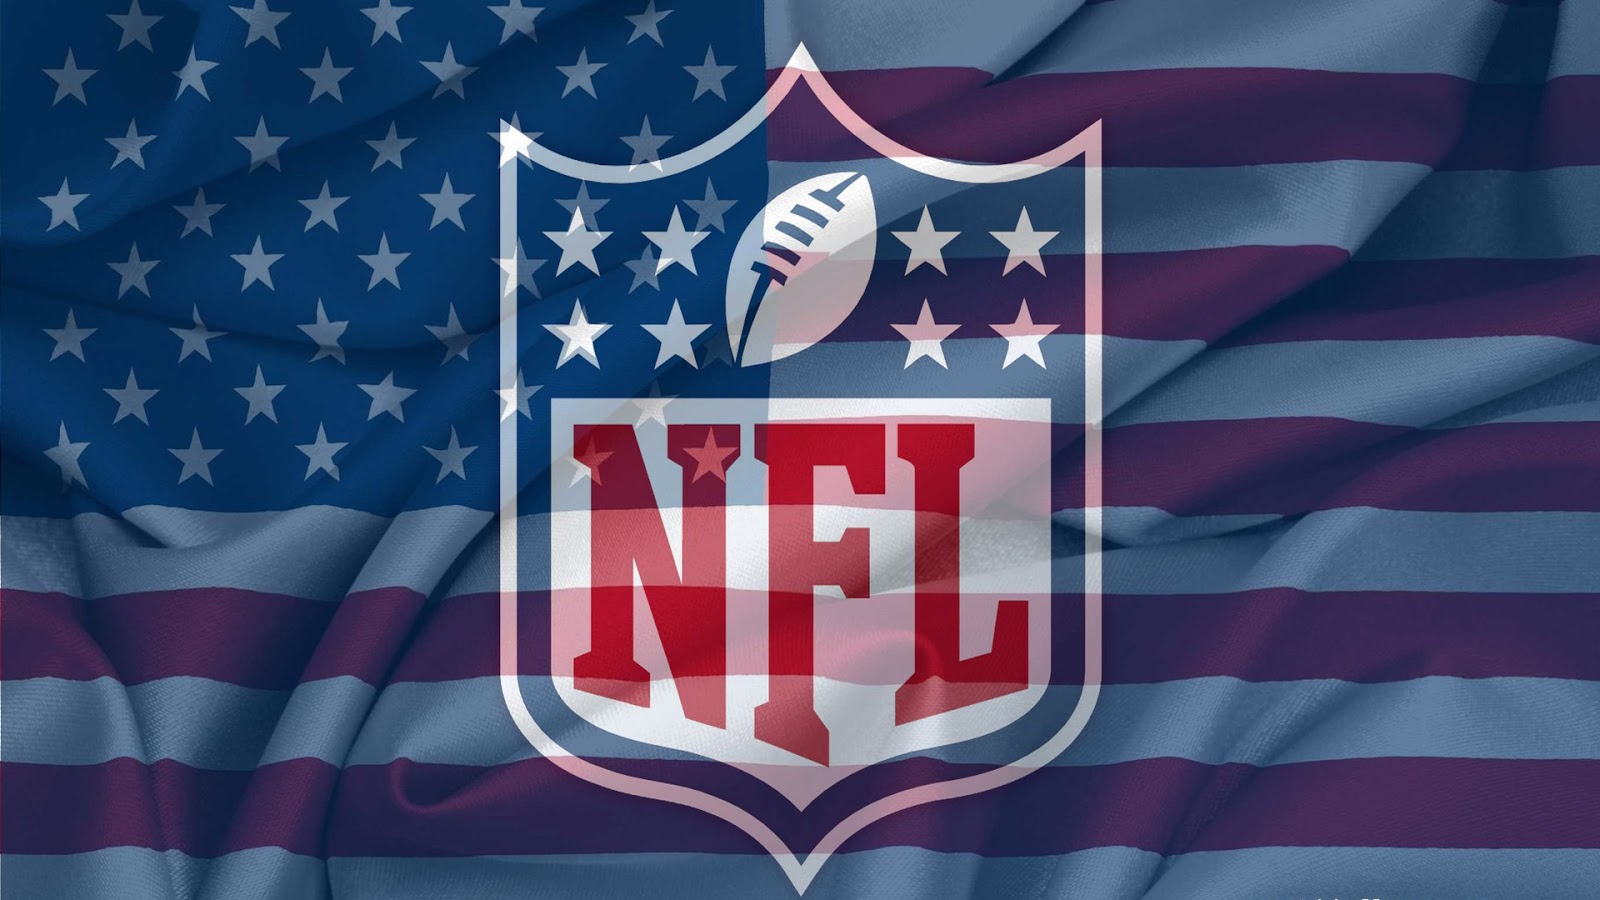 Nfl Football Desktop Backgrounds: Free Download NFL Football HD Wallpapers For